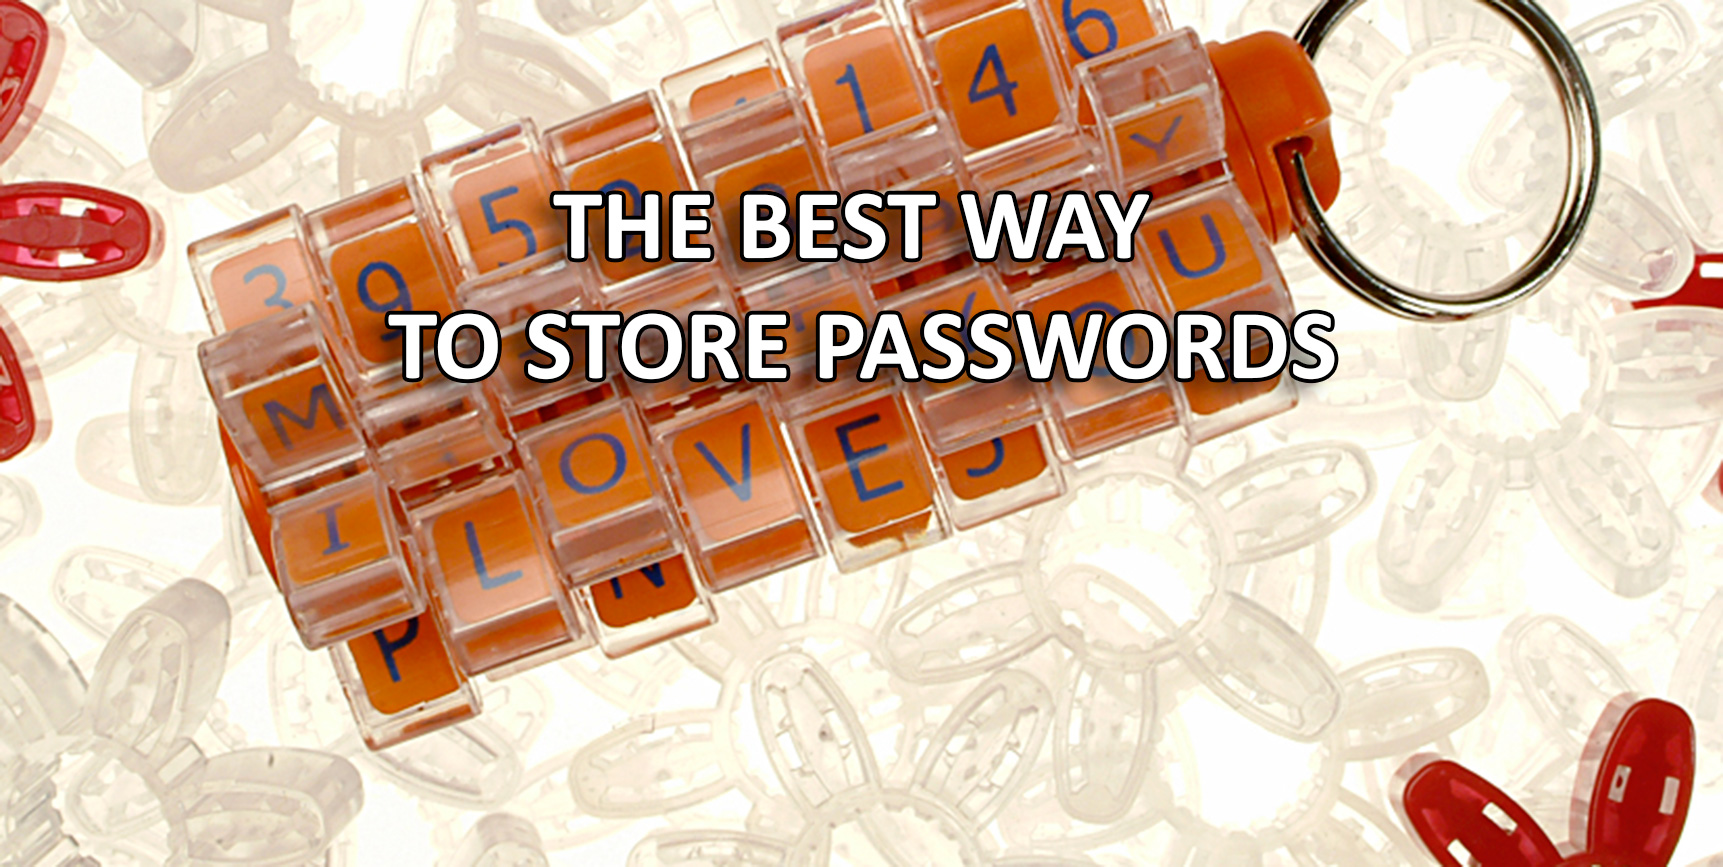 THE BEST WAY TO STORE PASSWORDS